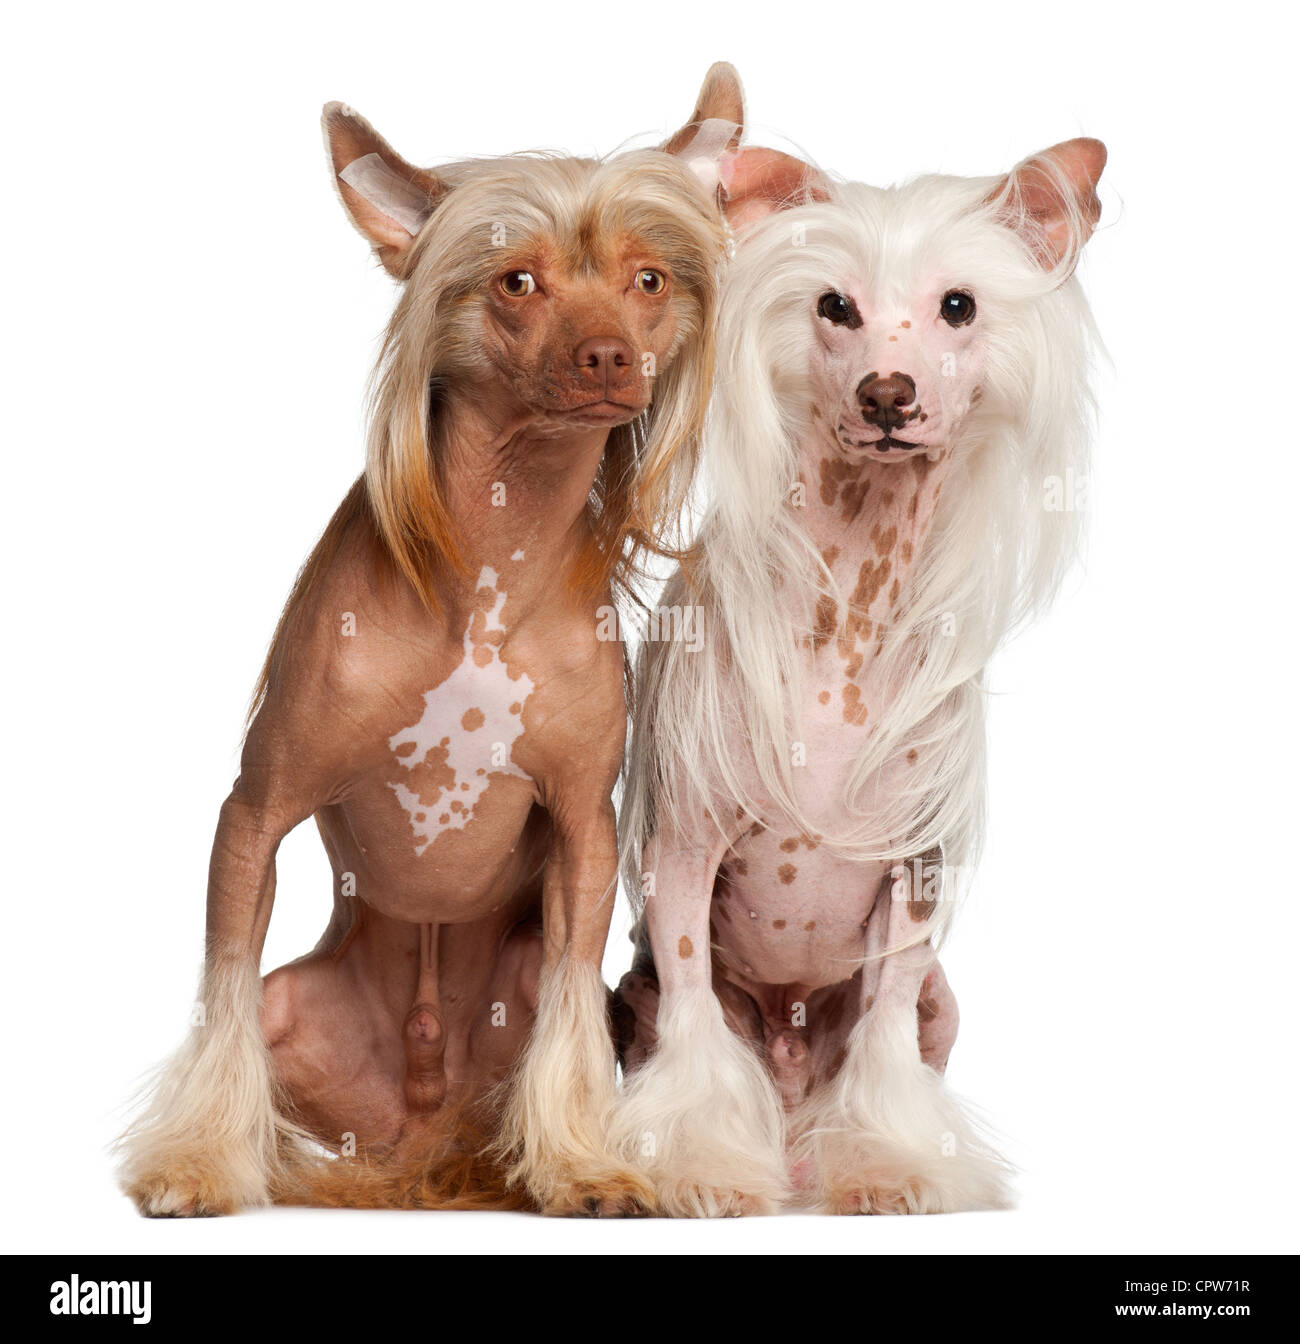 Chinese Crested Dogs, 11 and 16 months old, sitting against white background - Stock Image